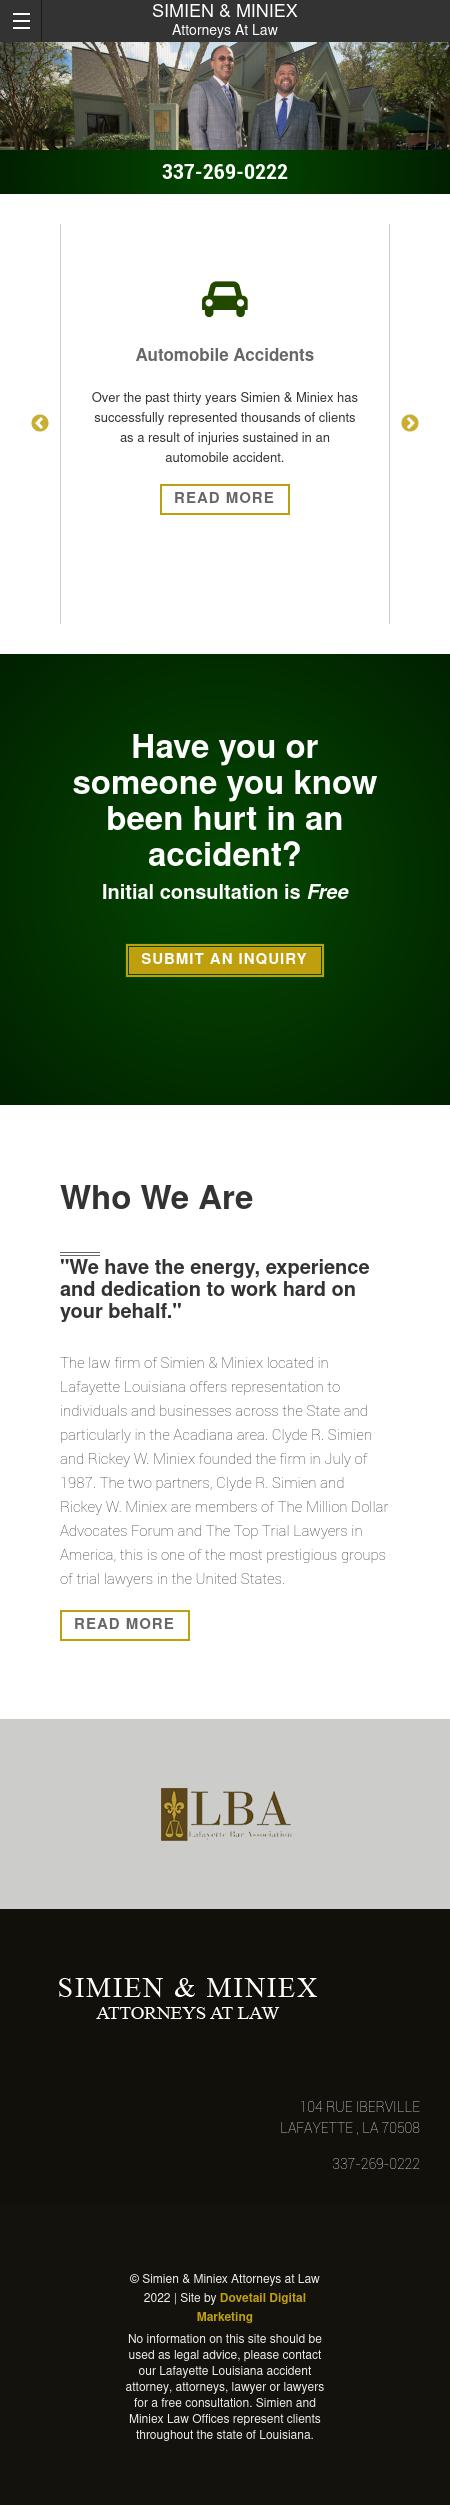 Simien And Miniex A Professional Law Corporation - Lafayette LA Lawyers